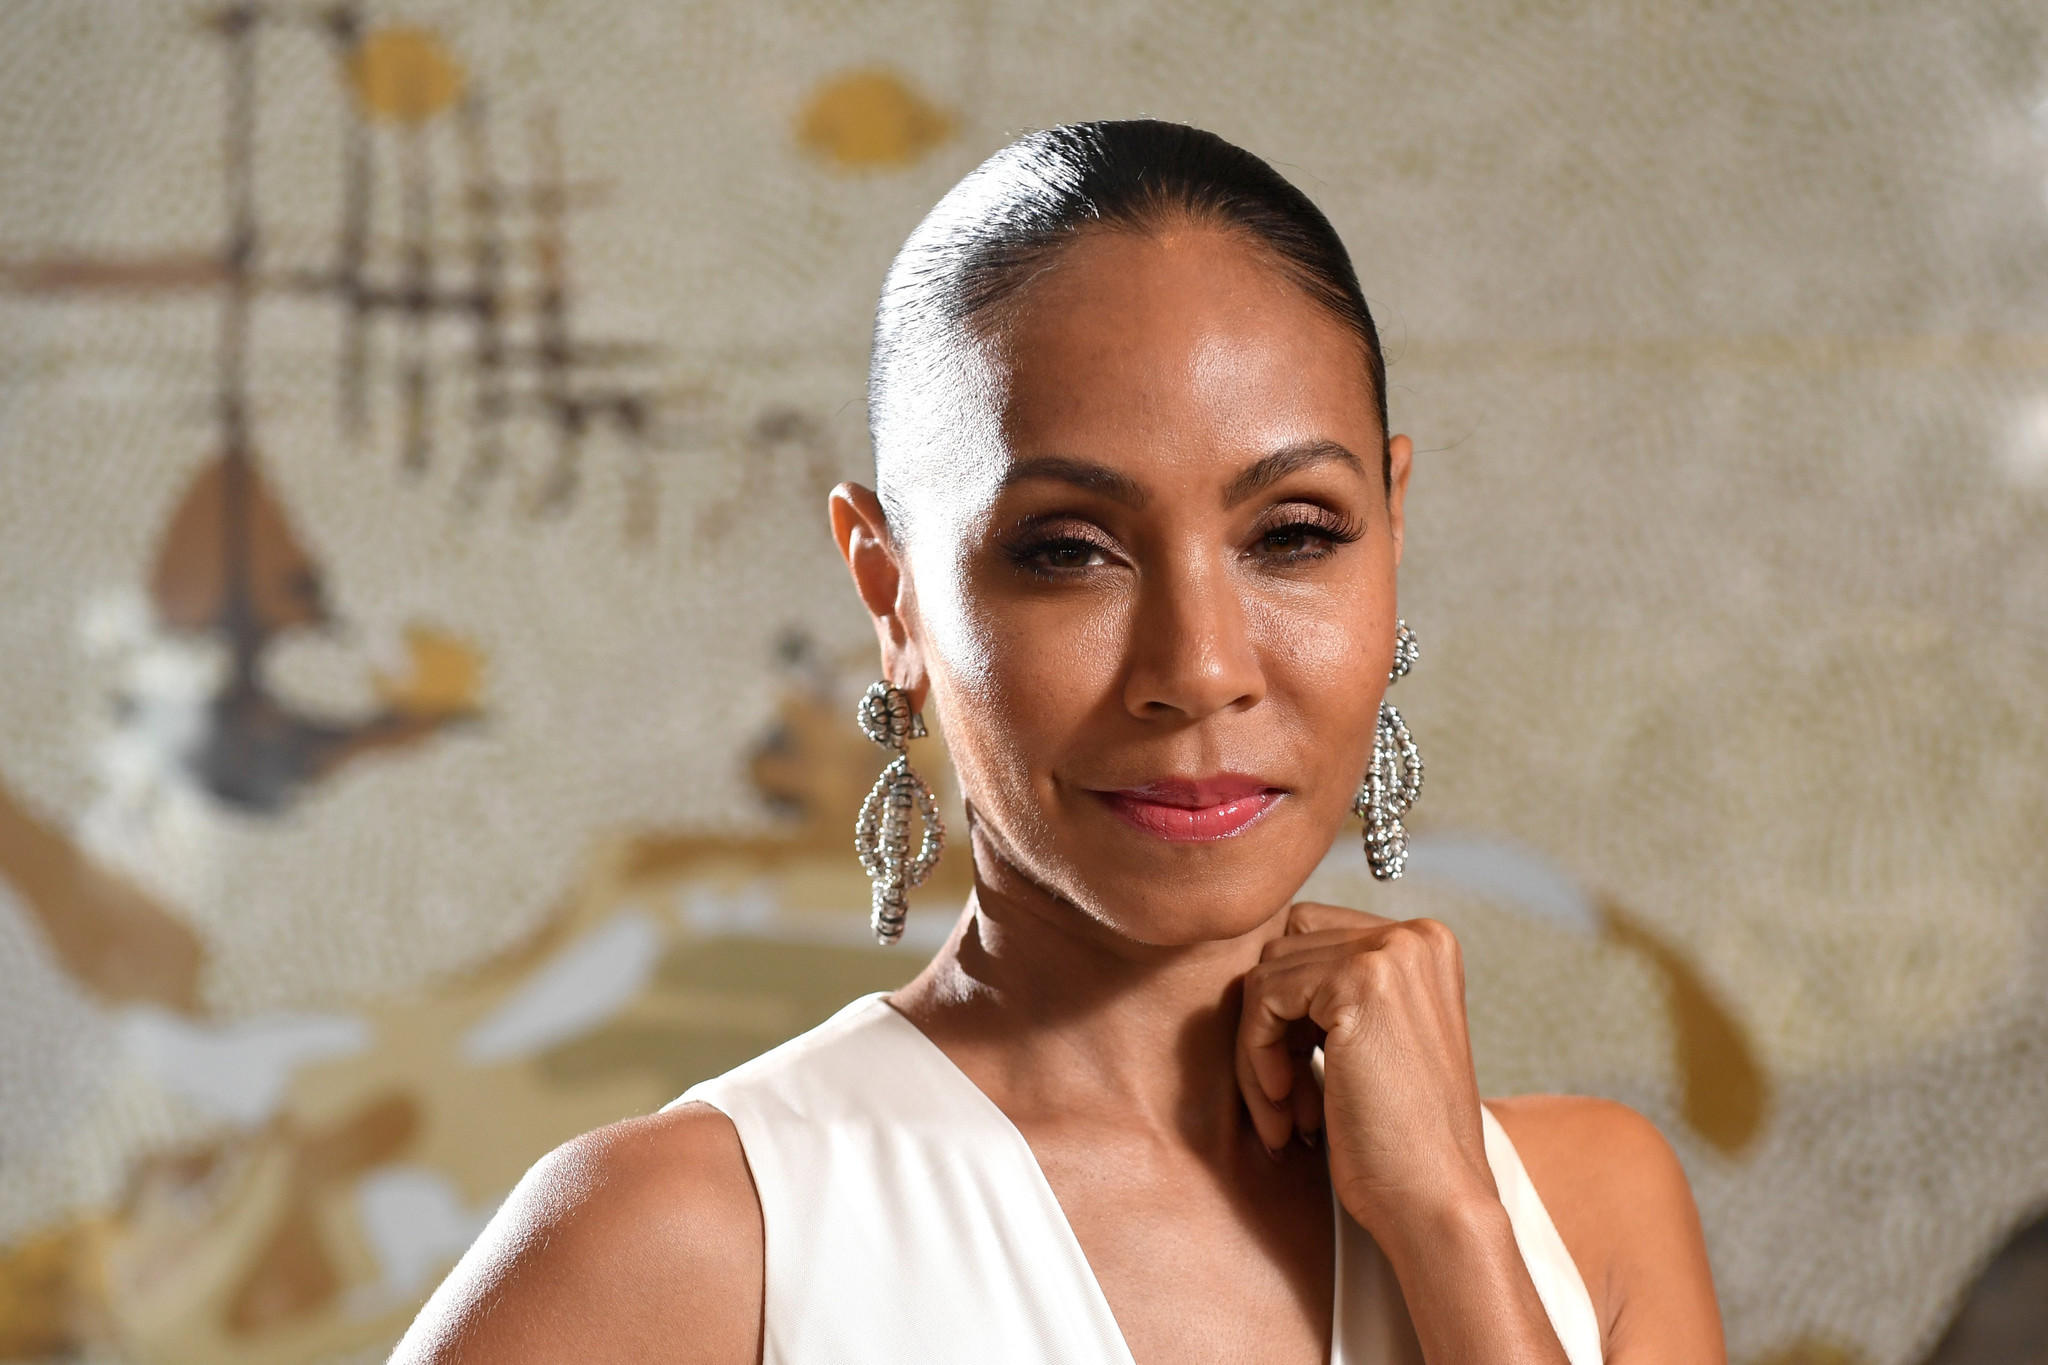 Jada Pinkett Smith talks about religion, says she is not a Scientologist